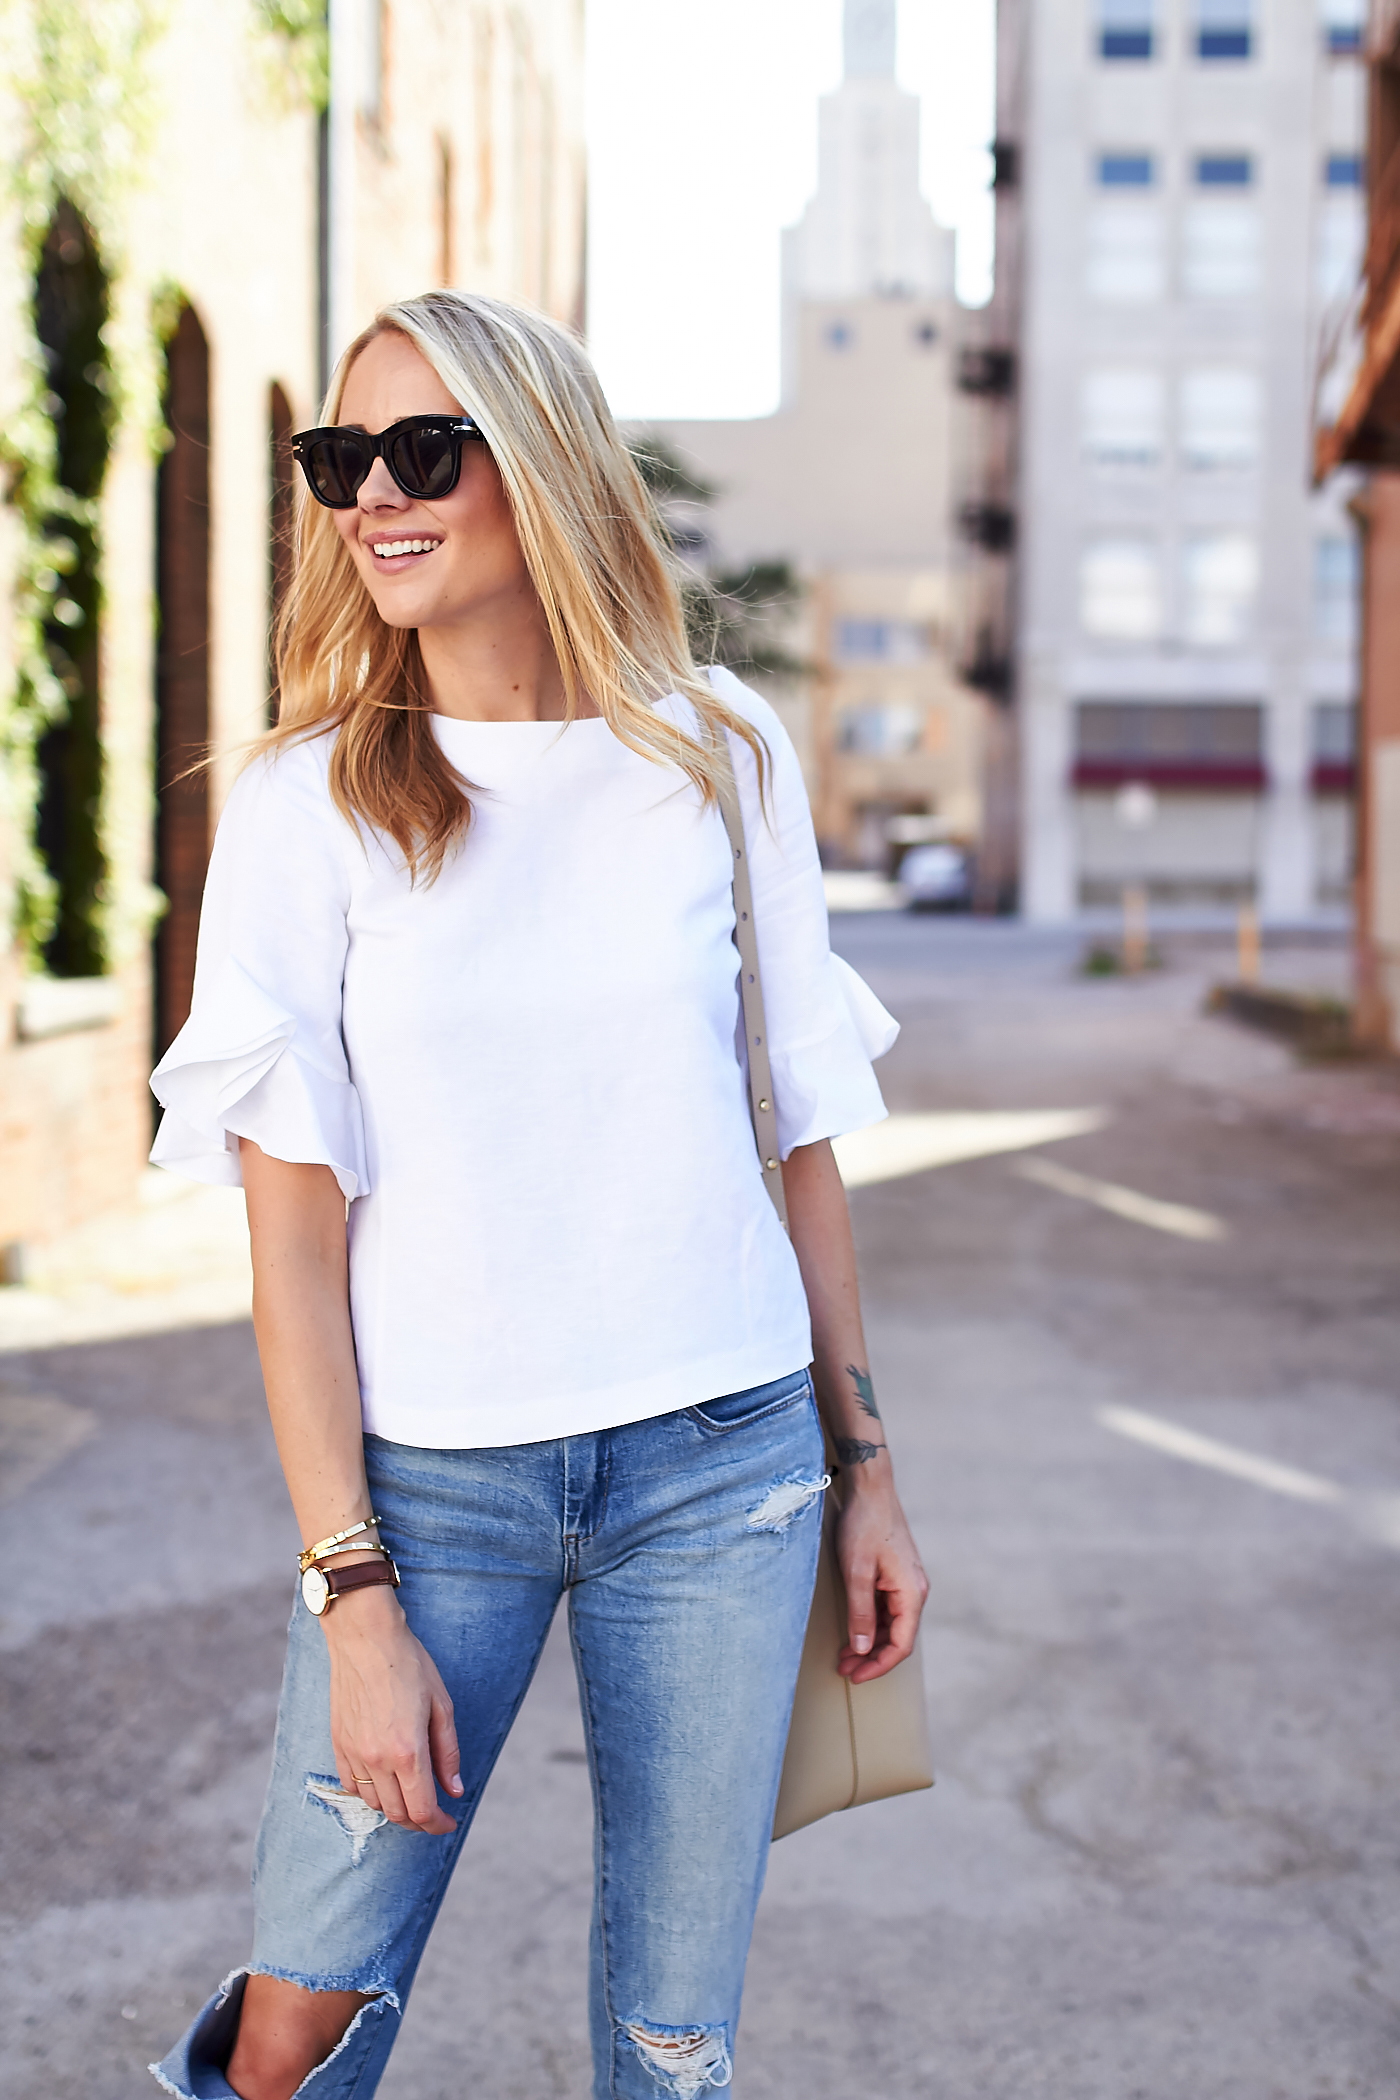 fashion-jackson-celine-sunglasses-white-ruffle-sleeve-top-ripped-skinny-jeans-nordstrom-anniversary-sale